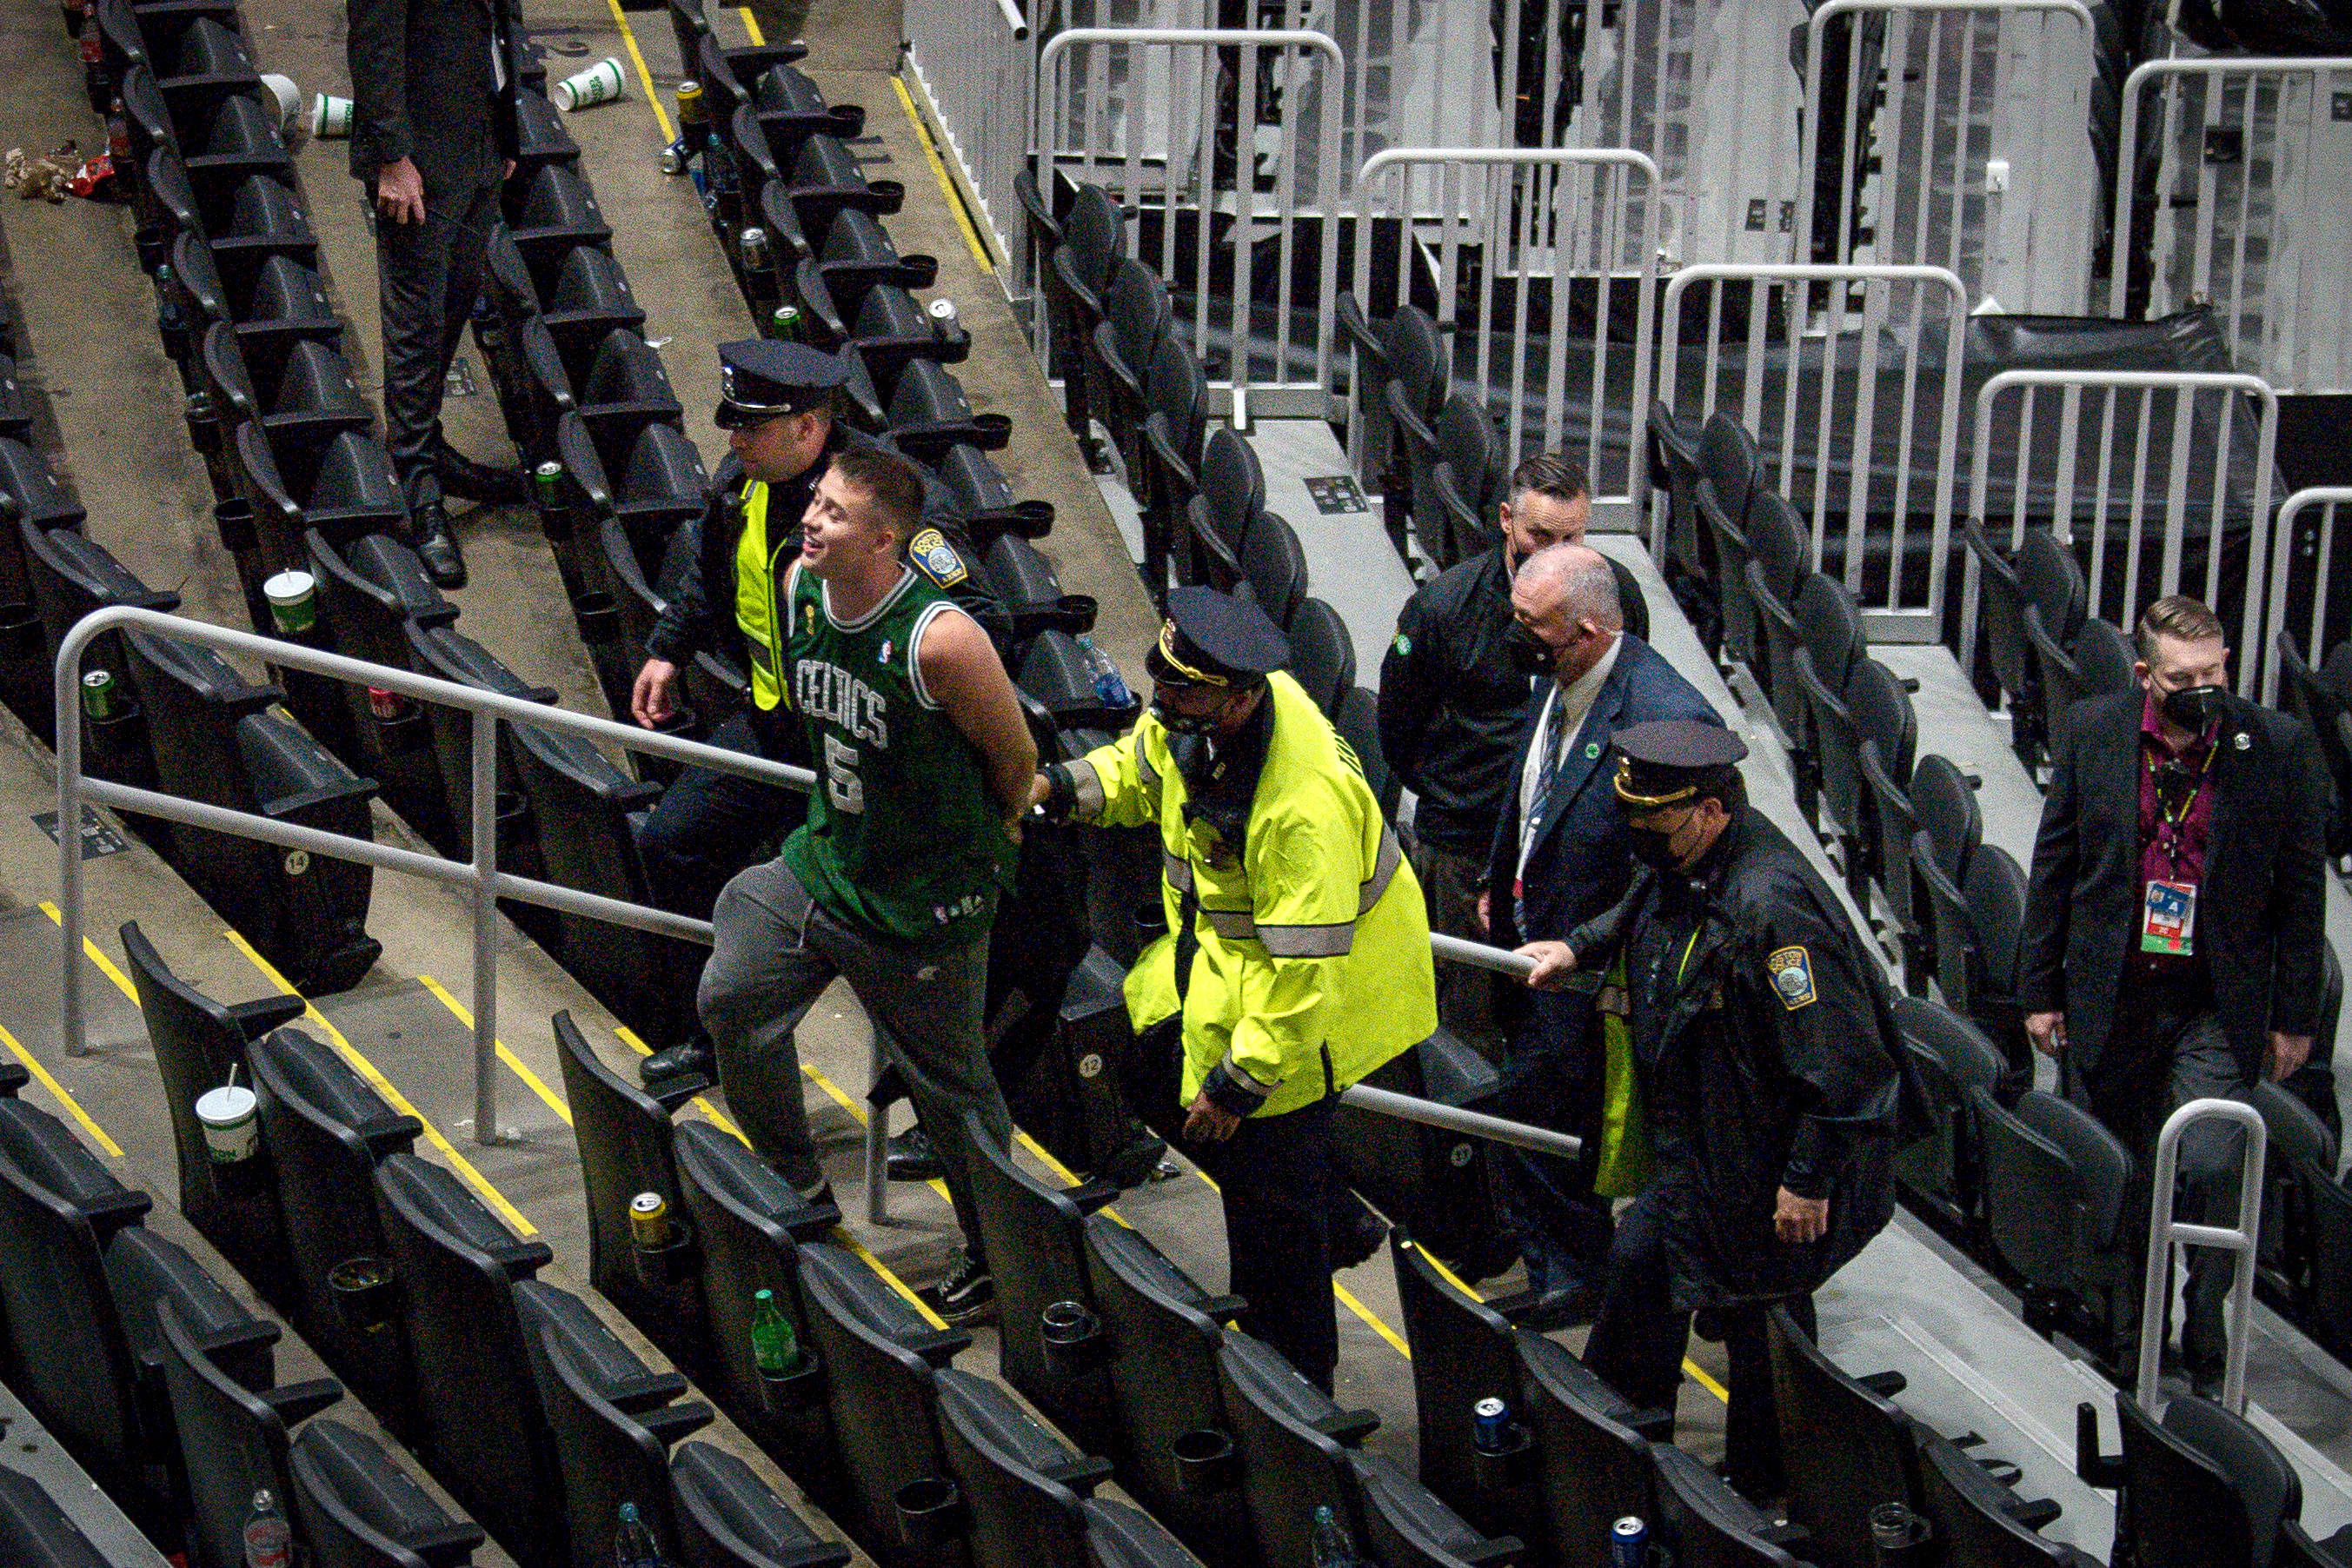 As America reopens, businesses — from airlines to arenas — see an uptick in bad behavior - CNBC